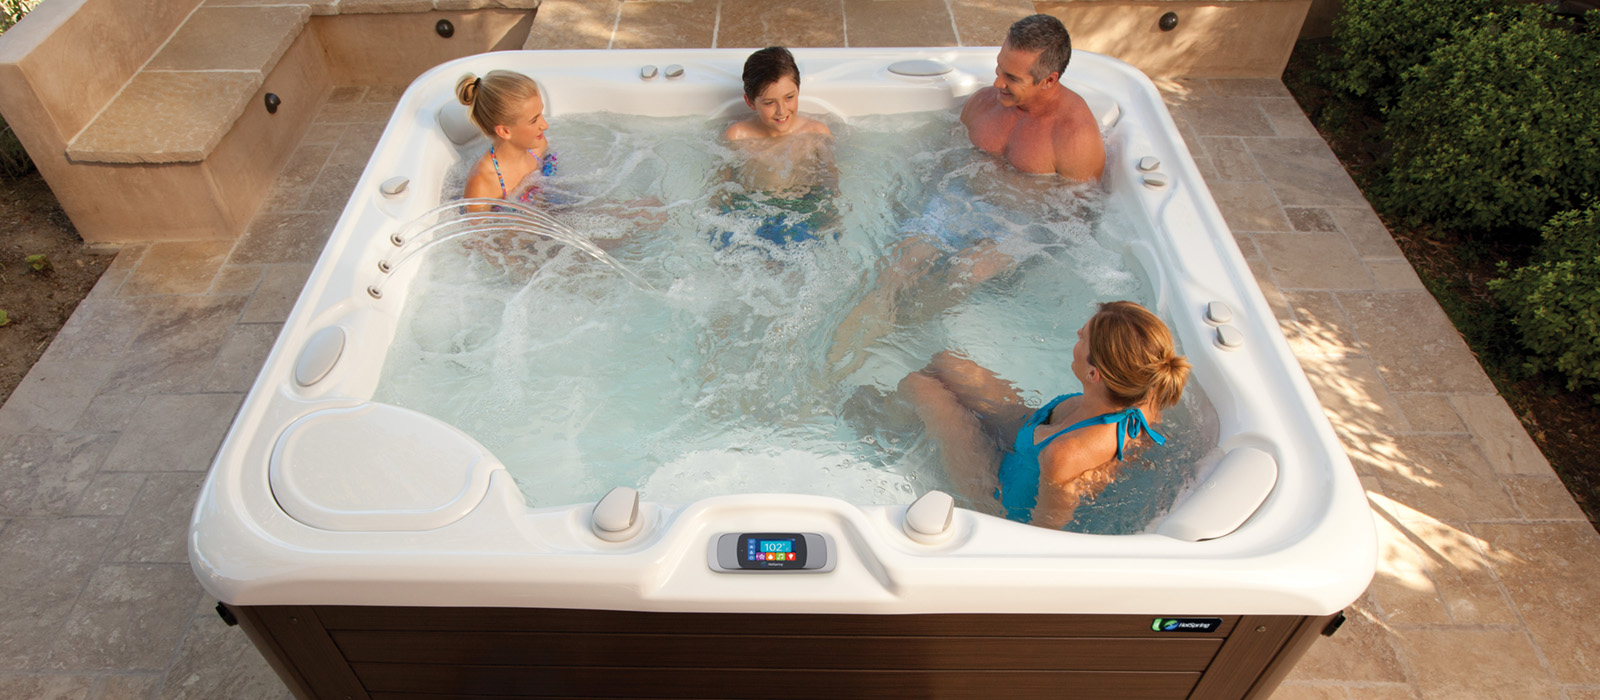 best-ideas-for-quality-family-time-hot-tub-spa-1600x700.jpg